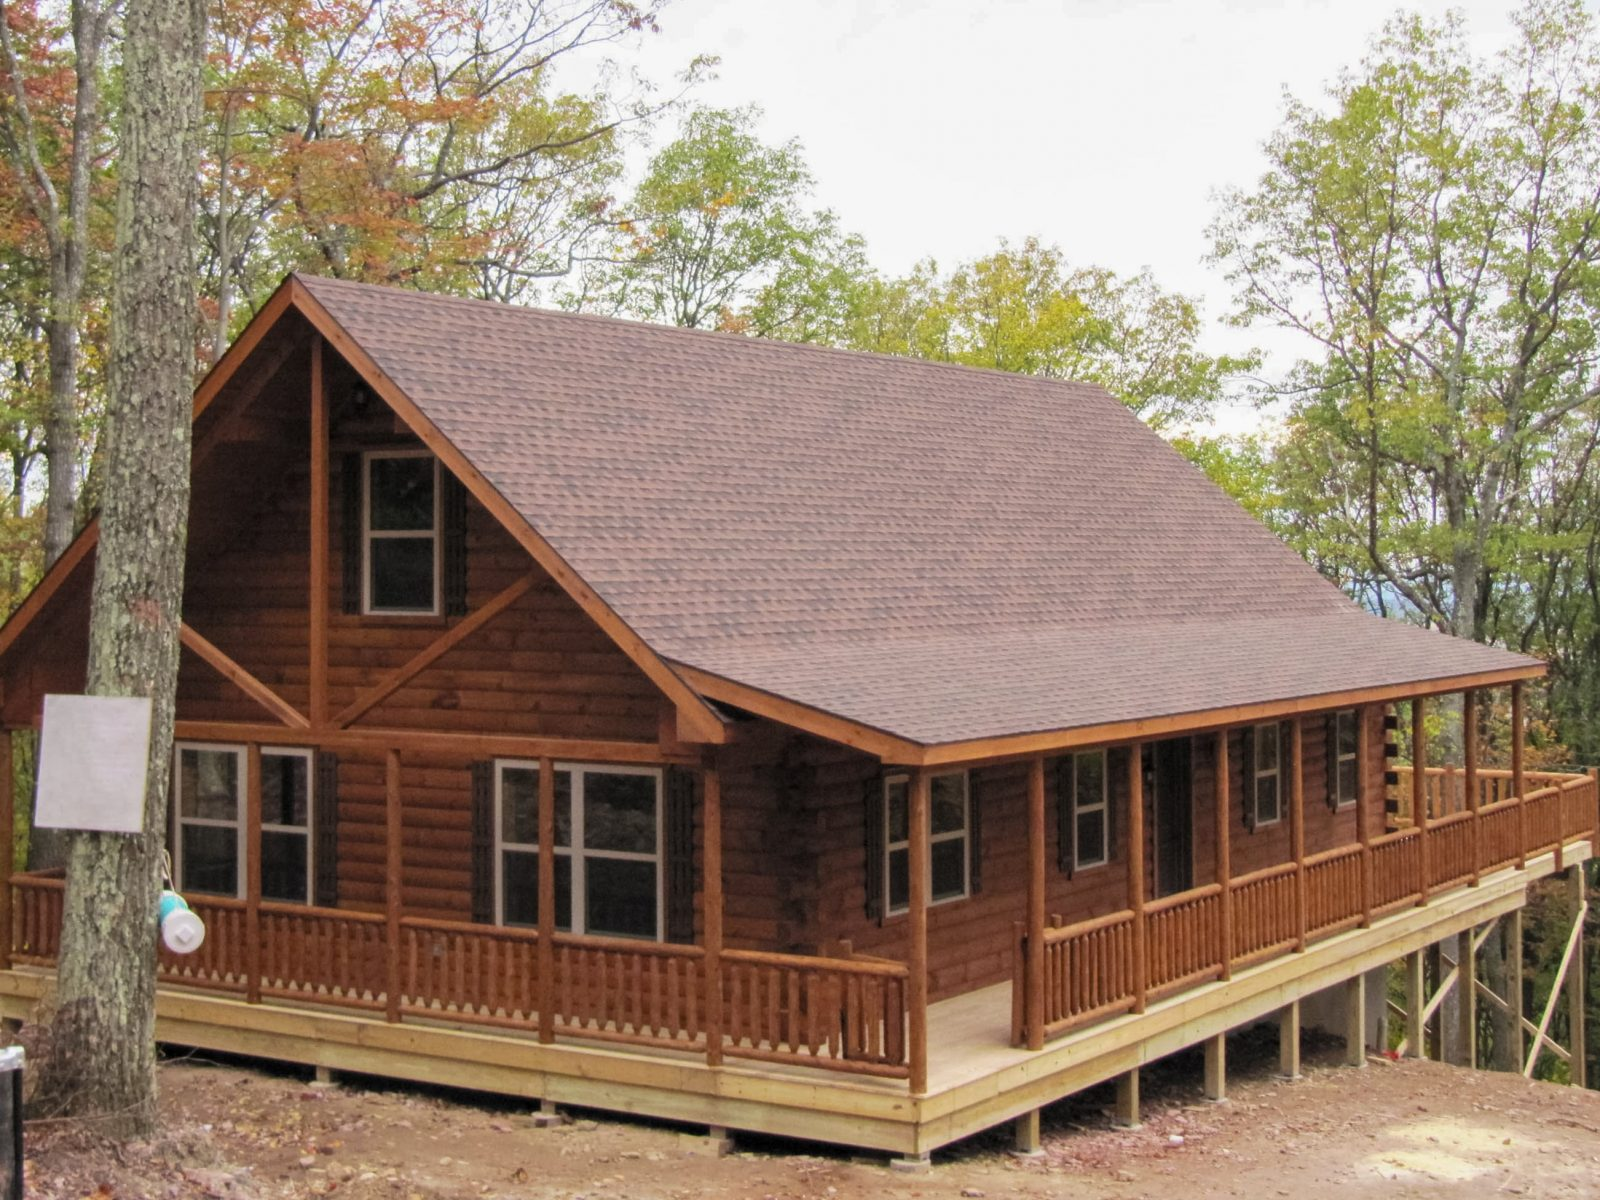 Wraparound porch on lofted cabin 1